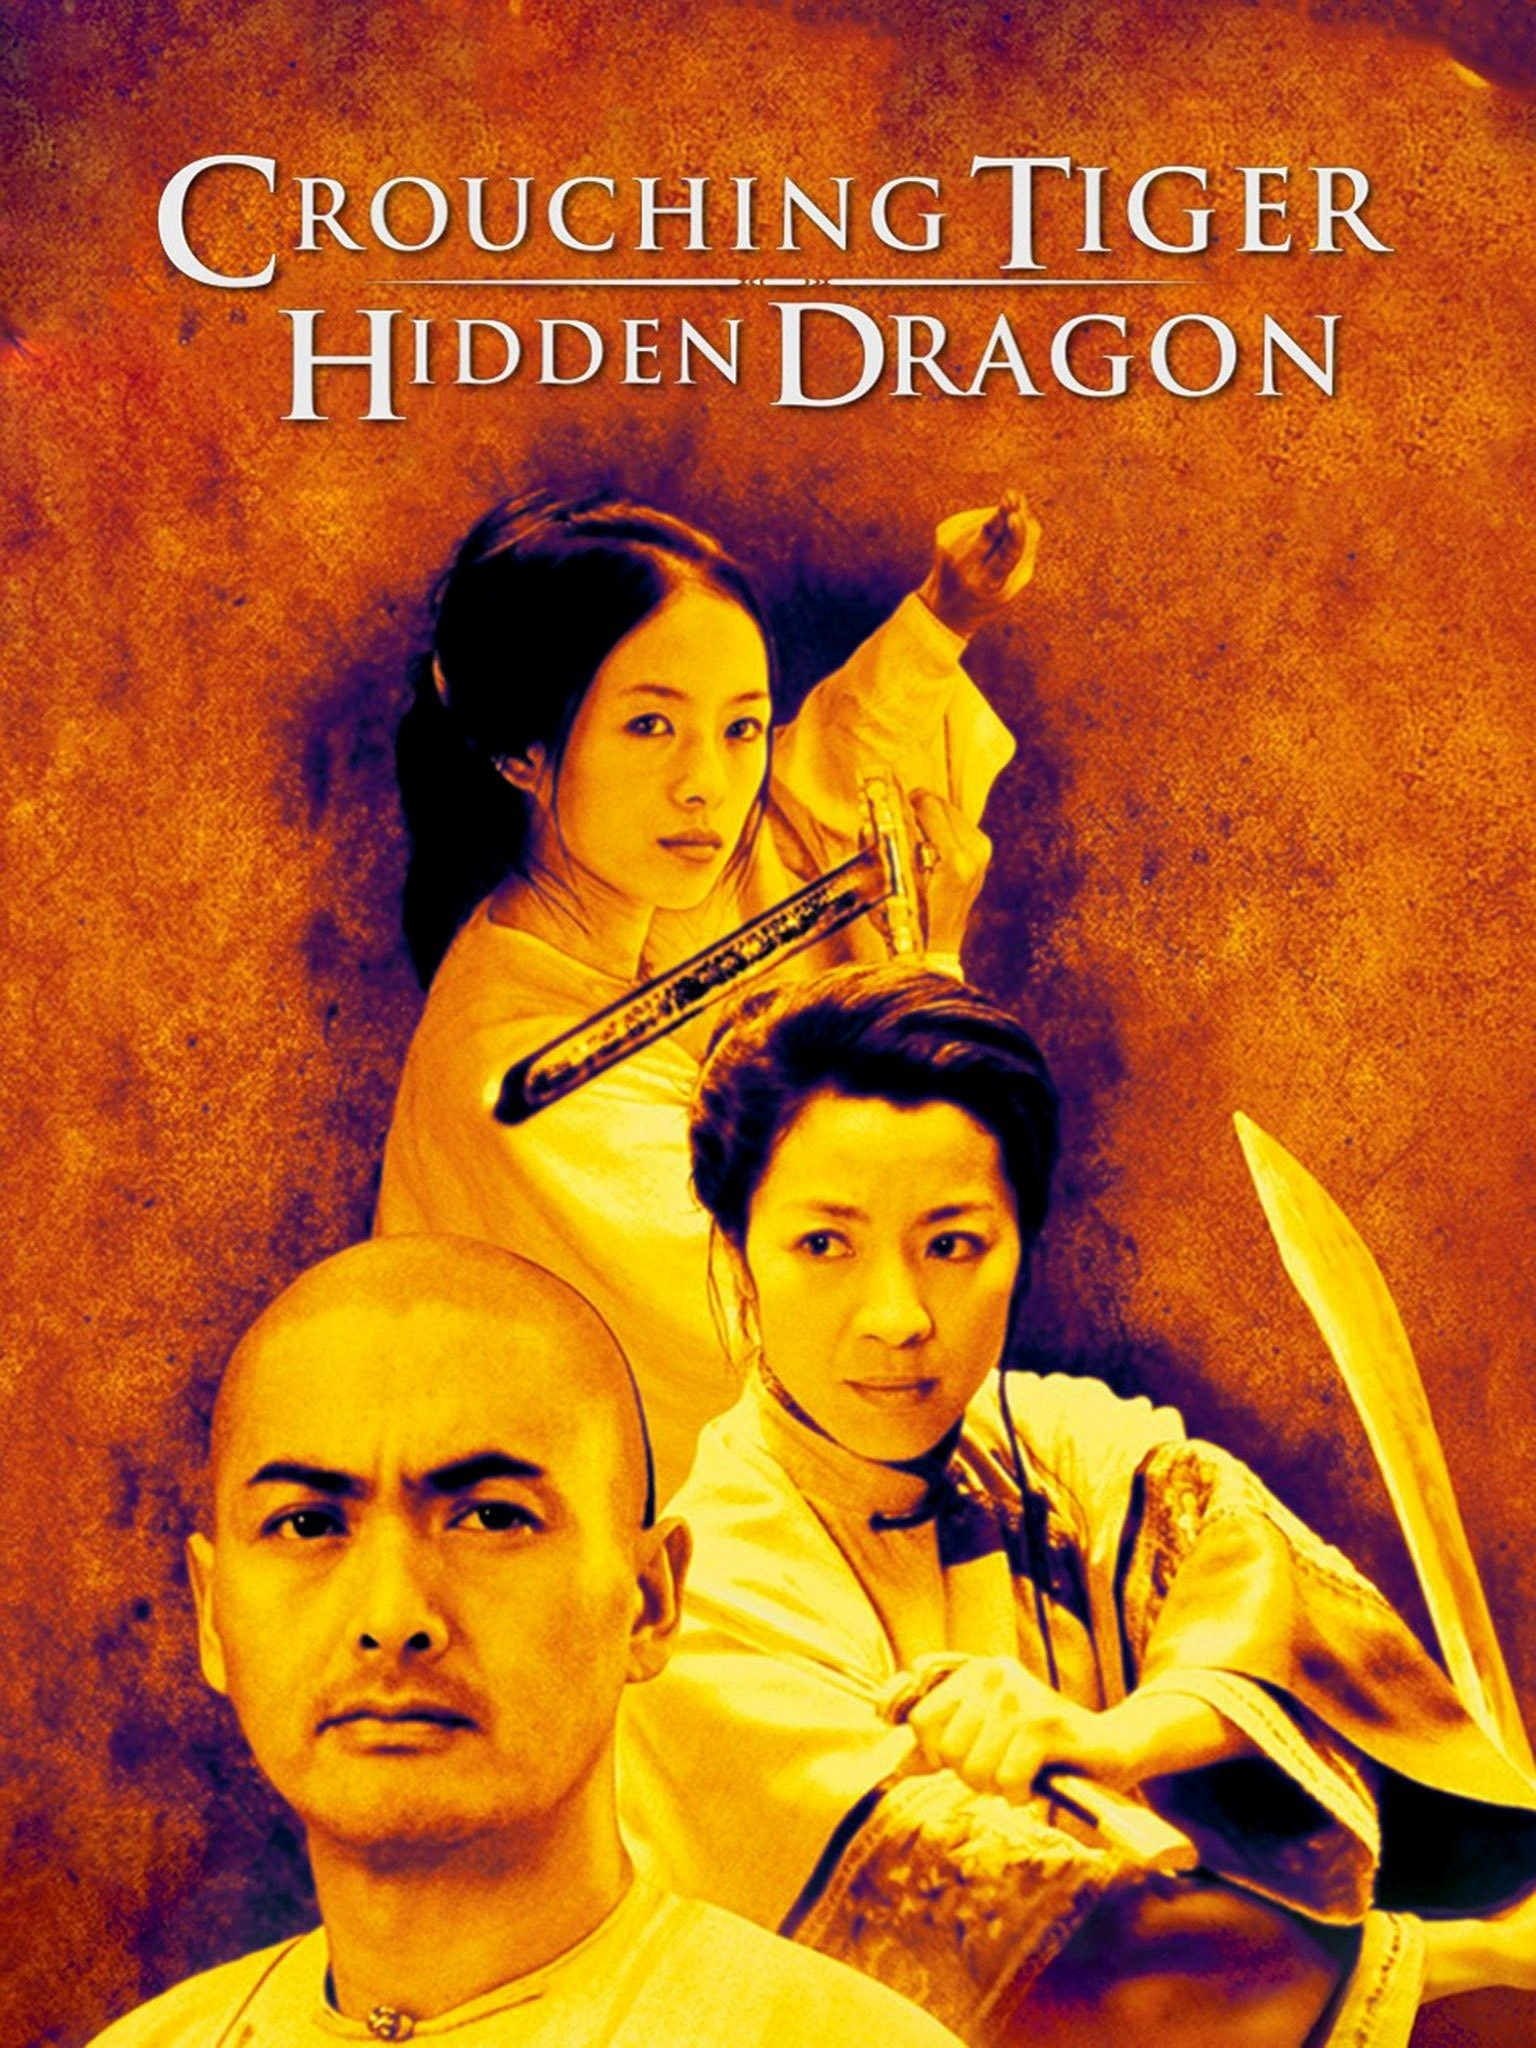 Crouching_Tiger_Hidden_Dragon_2000_7428399